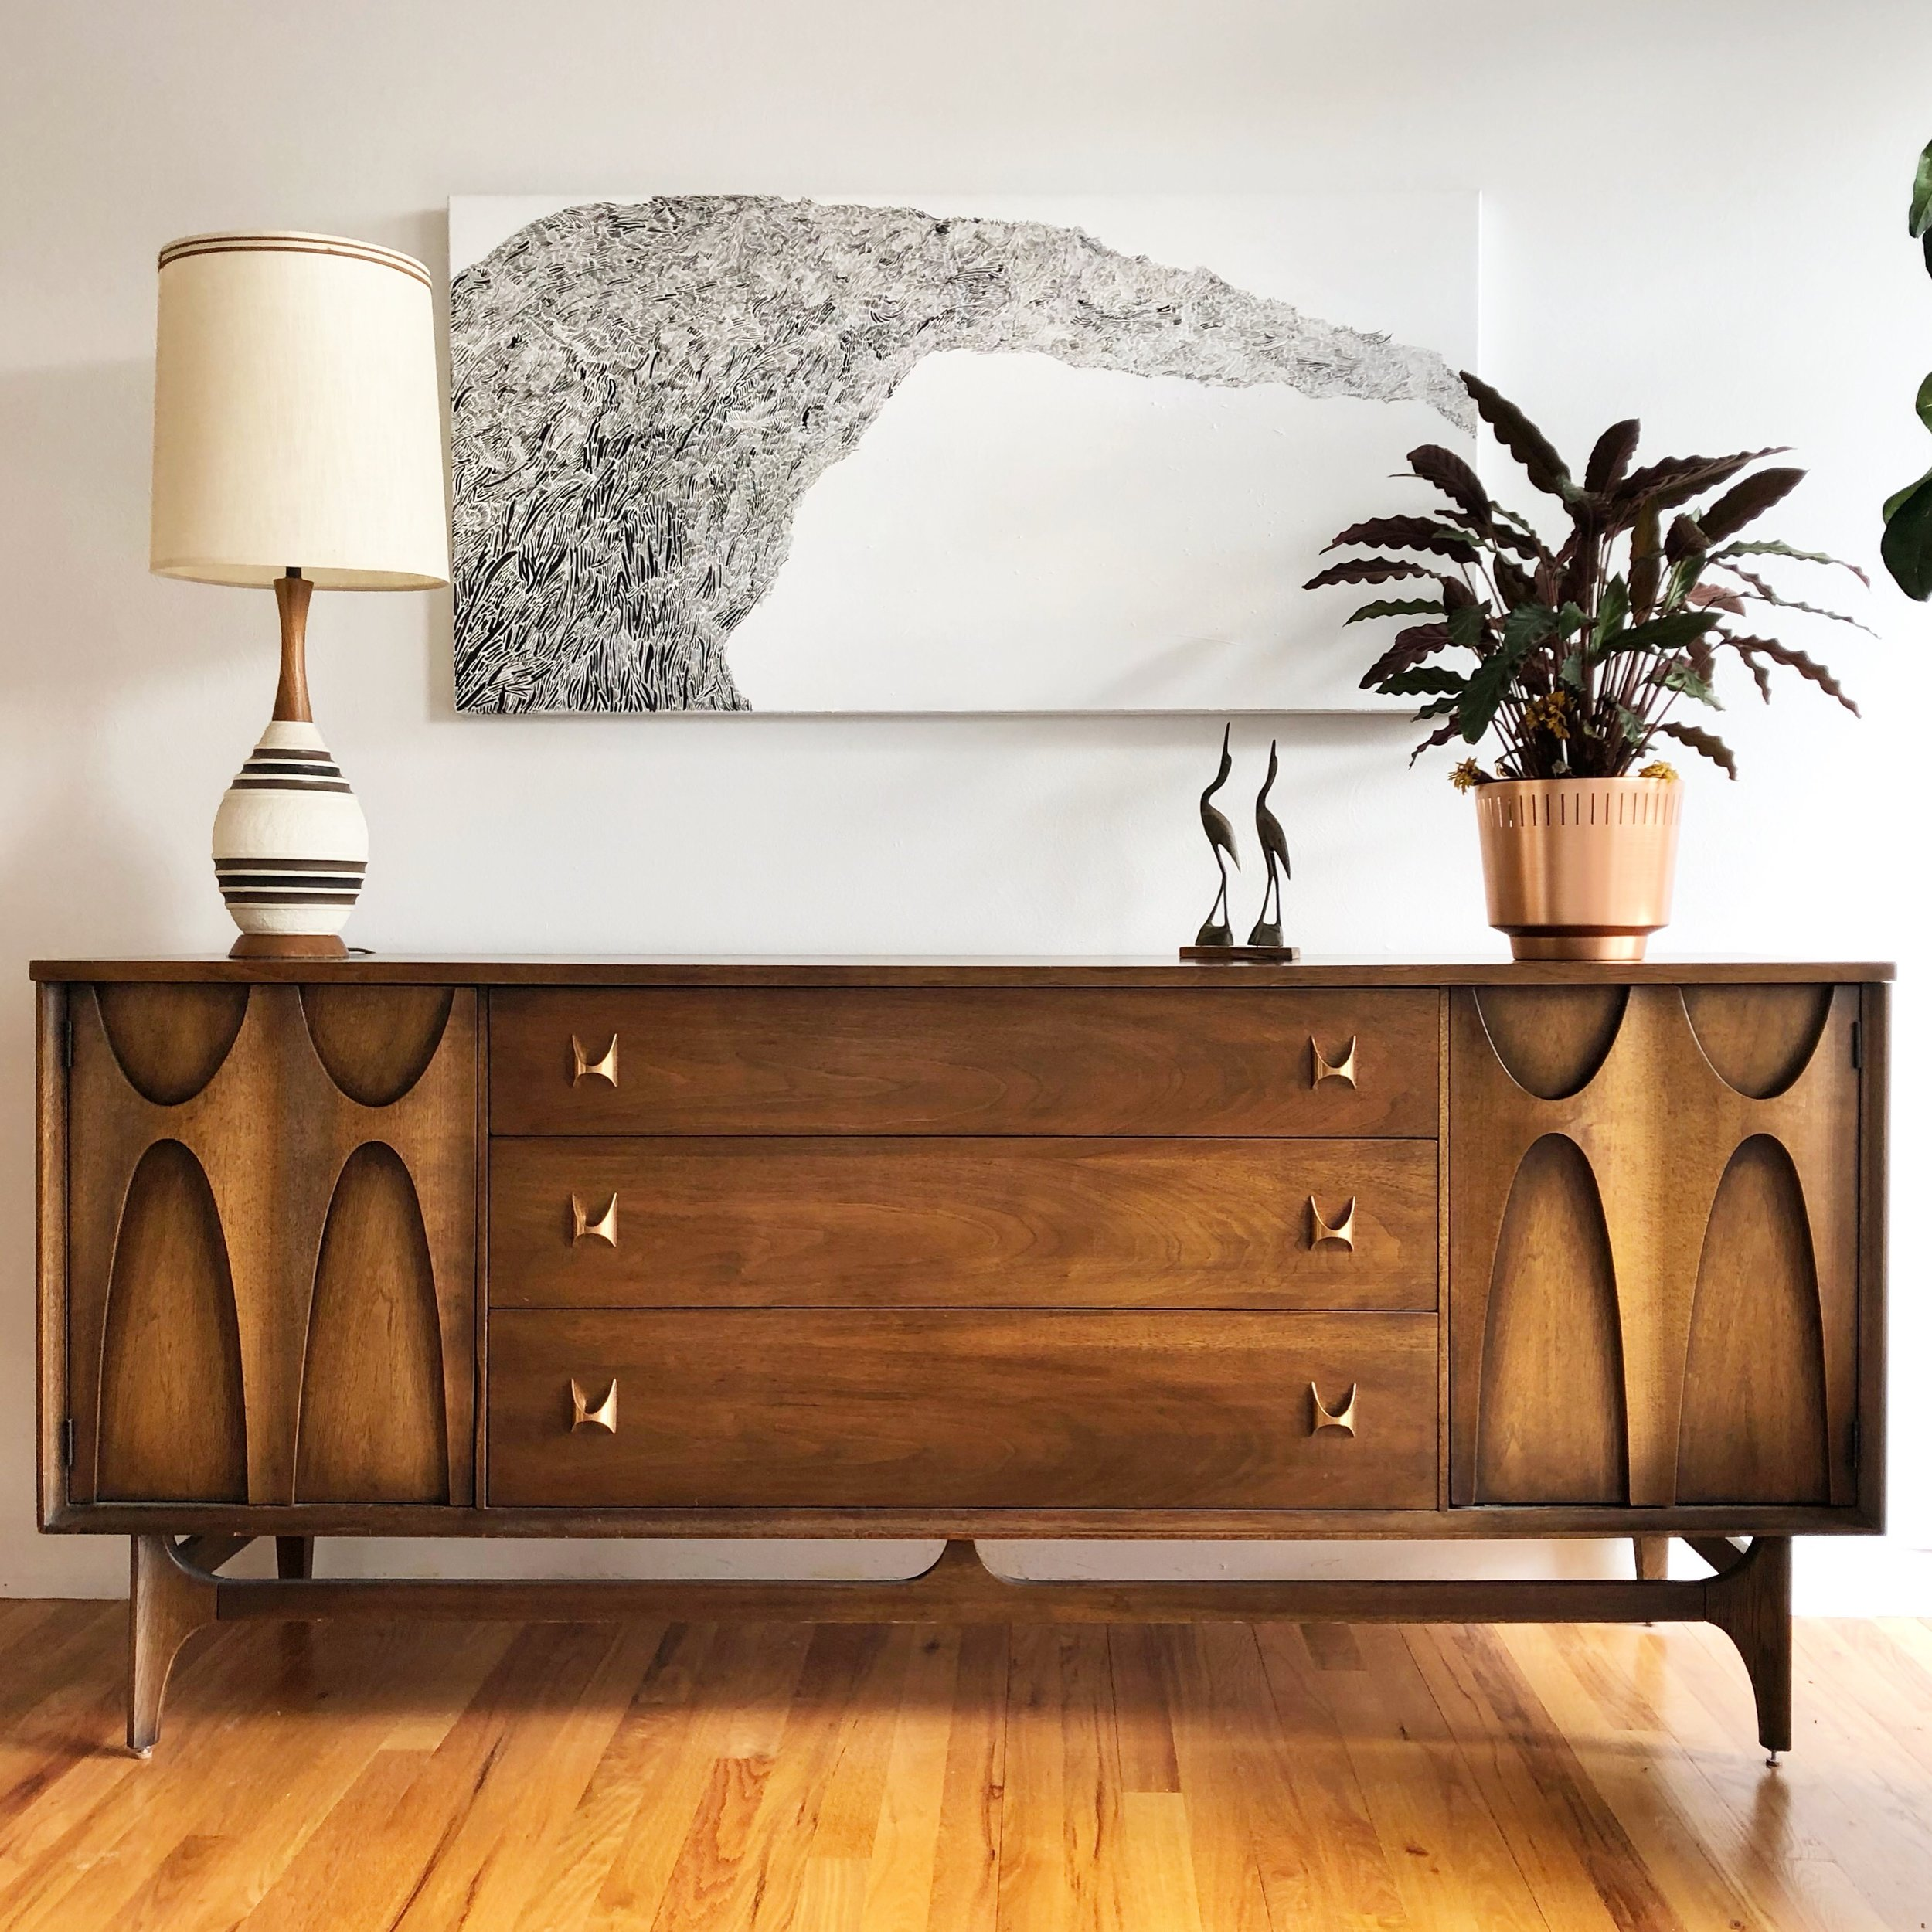 Broyhill Brasilia dresser and vintage lamp sourced from  Mid-Century Mike